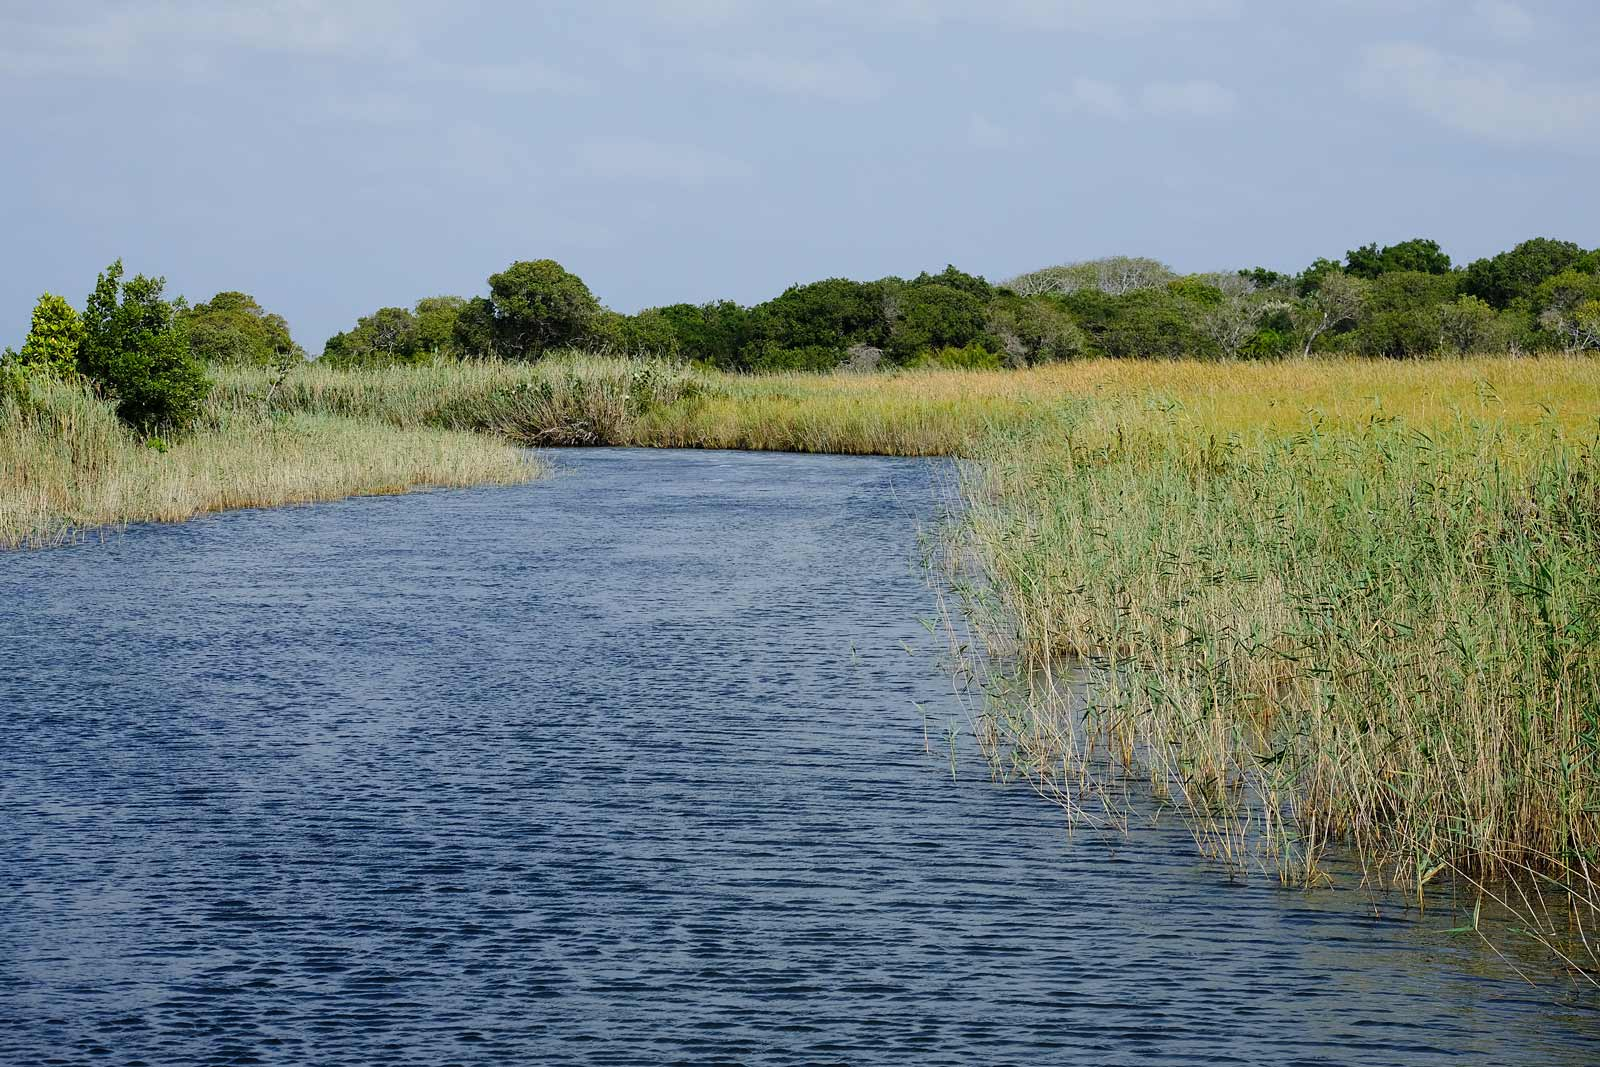 Waterway between green reeds at Kosi Bay